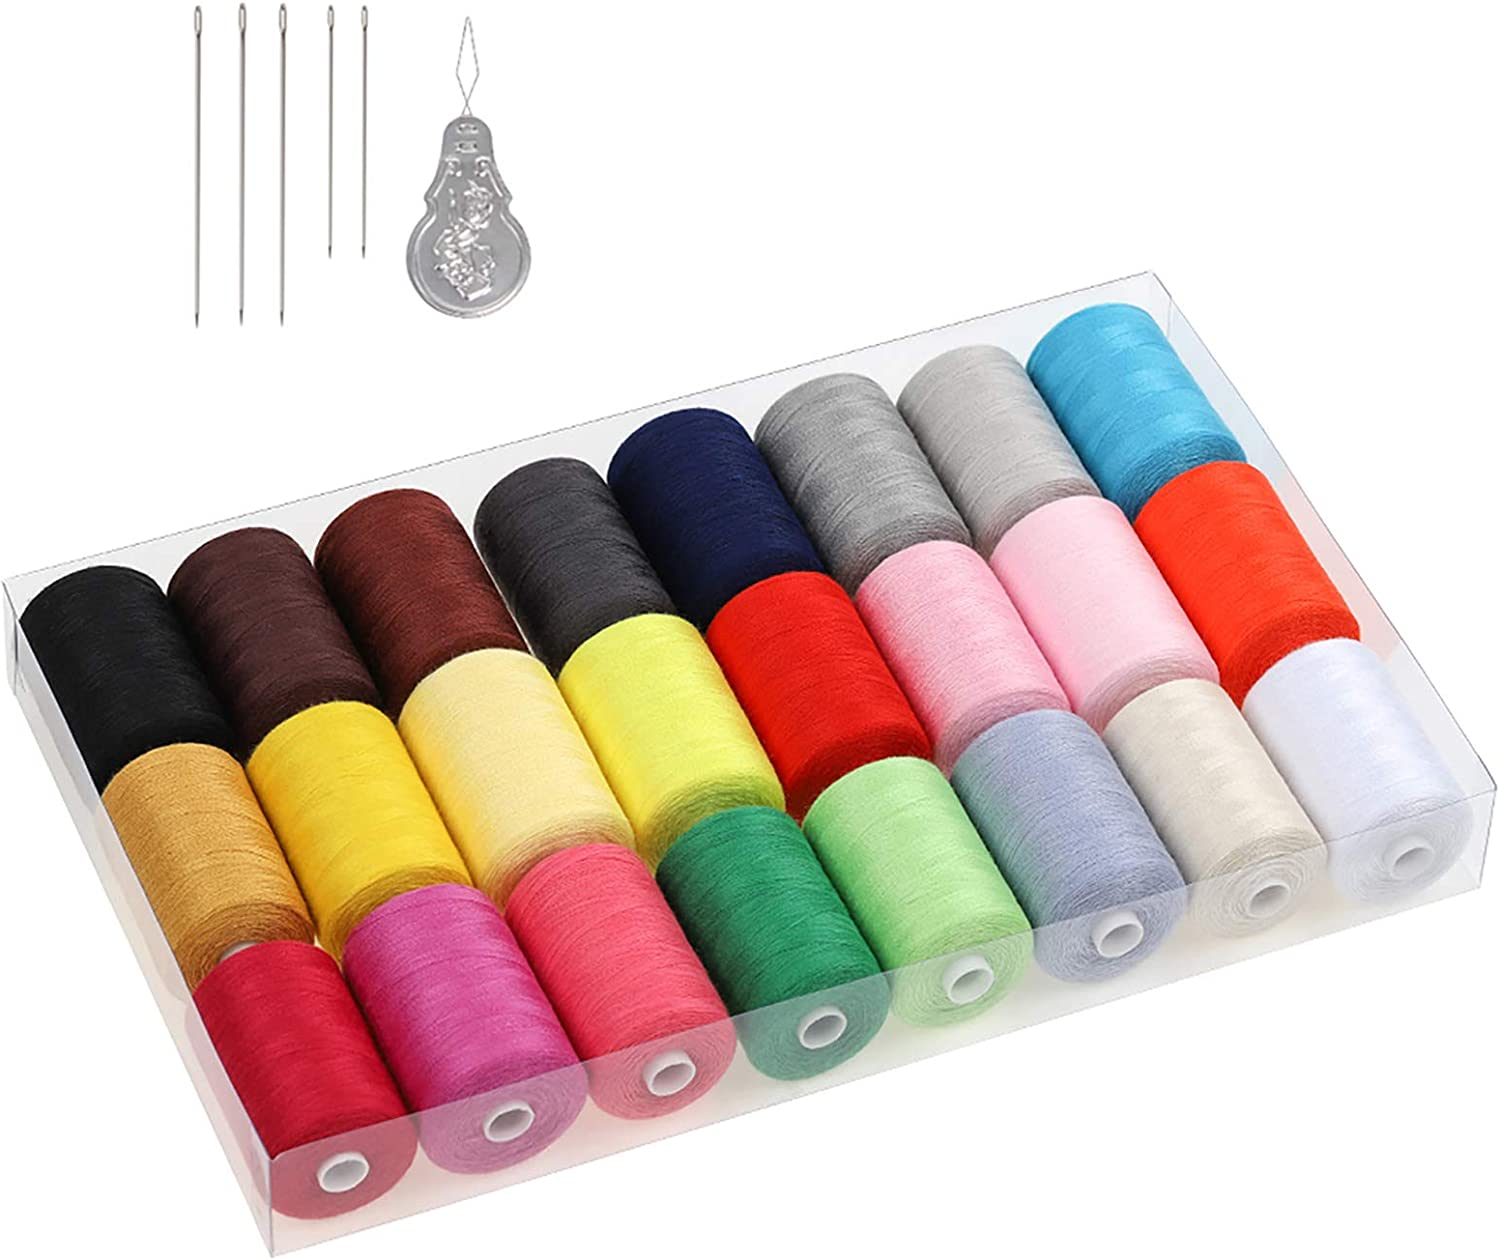 Sewing Kit with 24 Thread Spools Machine Max 45% OFF Supplies Special Campaign